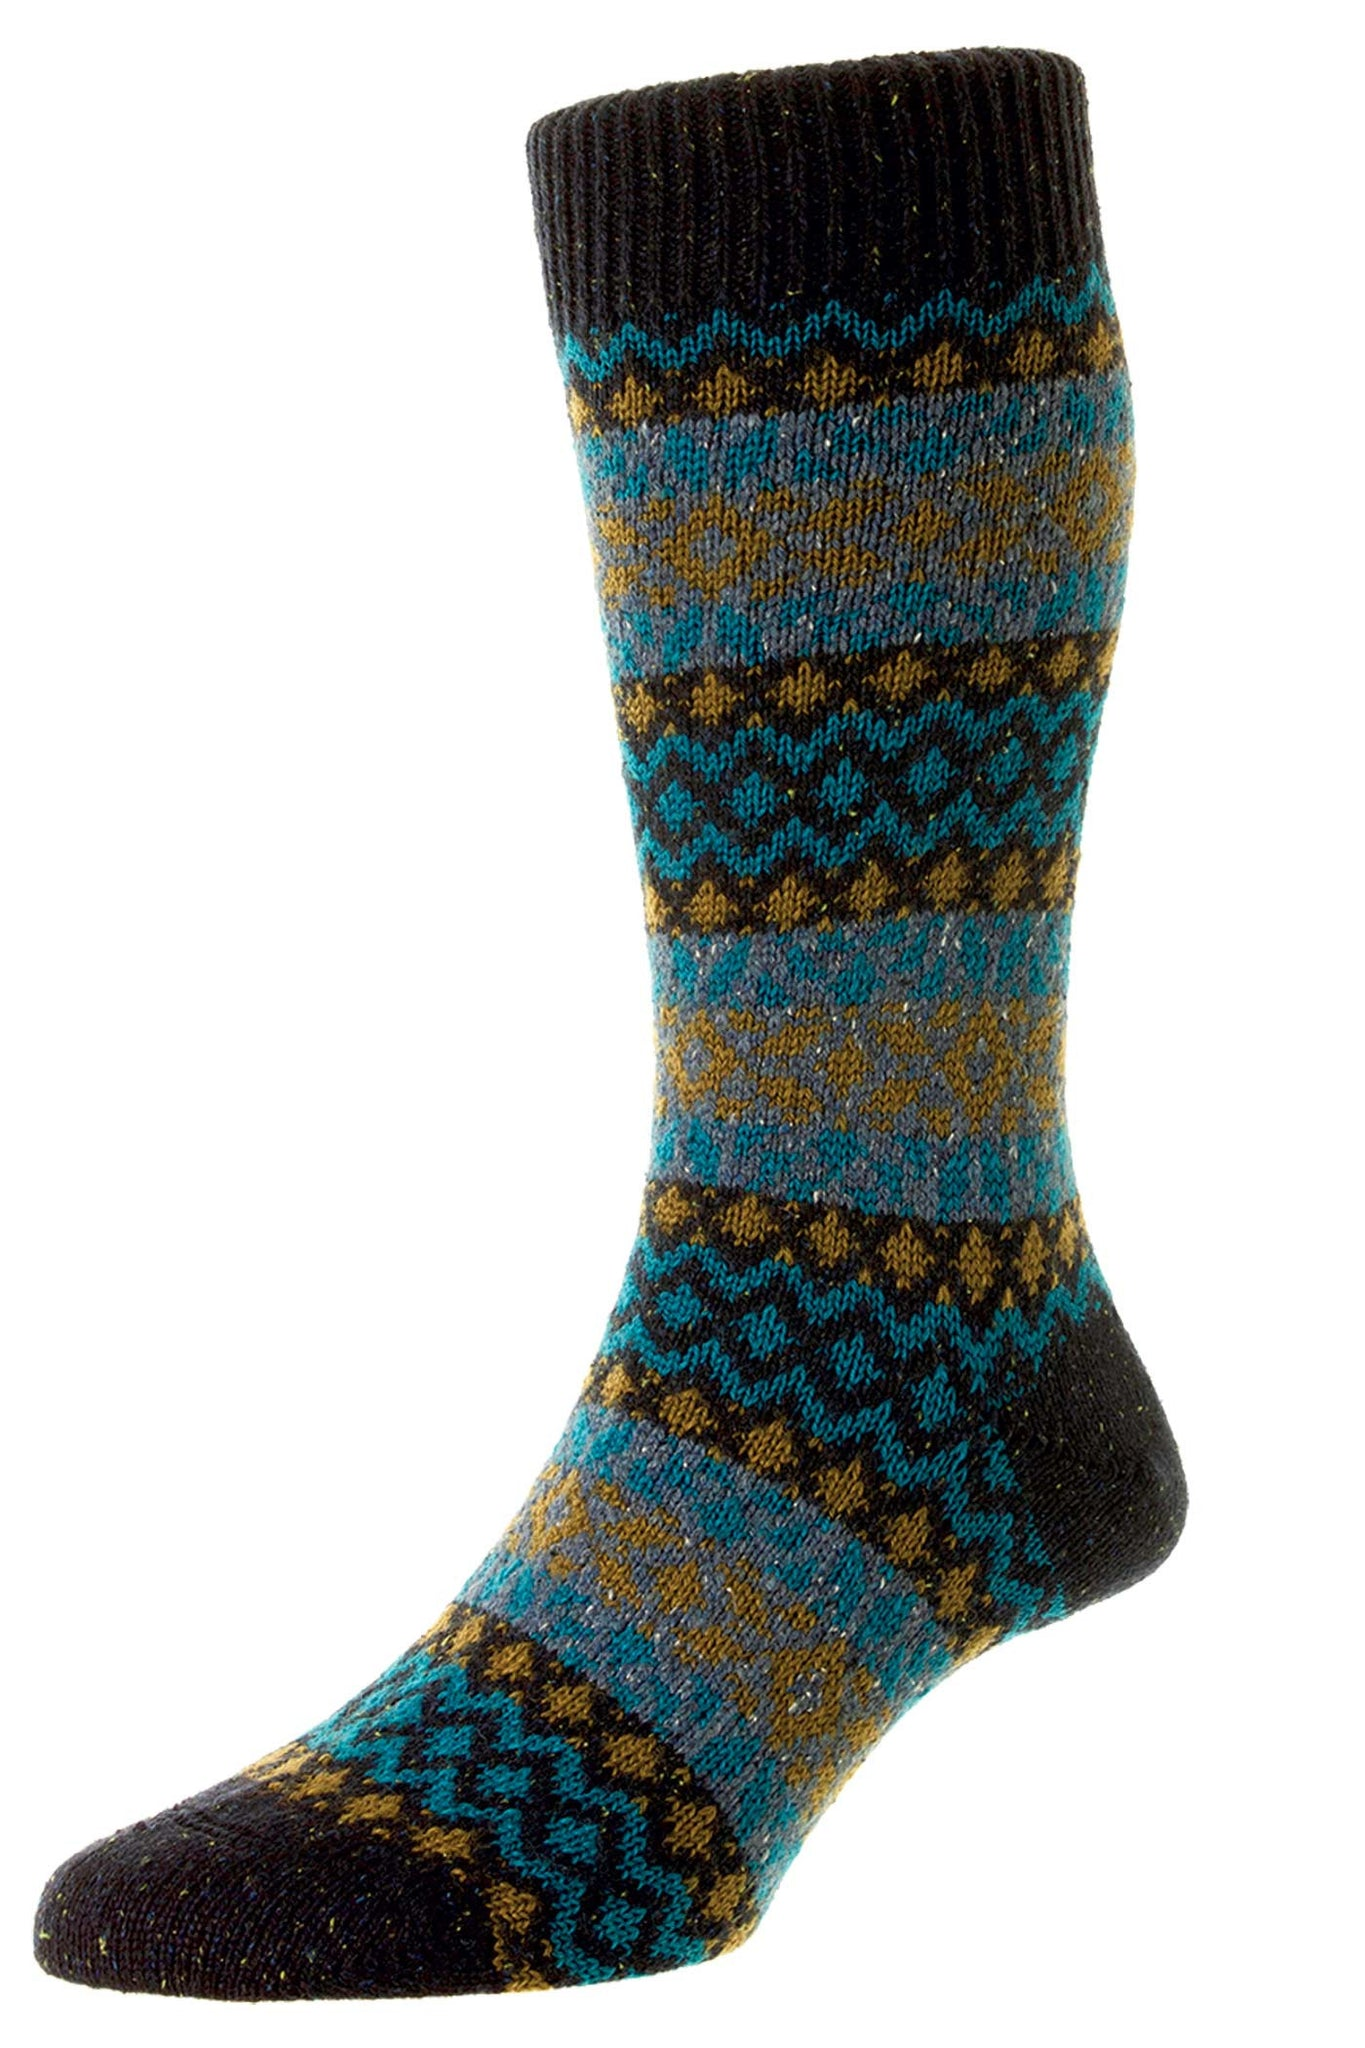 Wool-composite socks made in the UK by Heritage socks masters Scott-Nichol in navy and dark orange fairisle pattern.